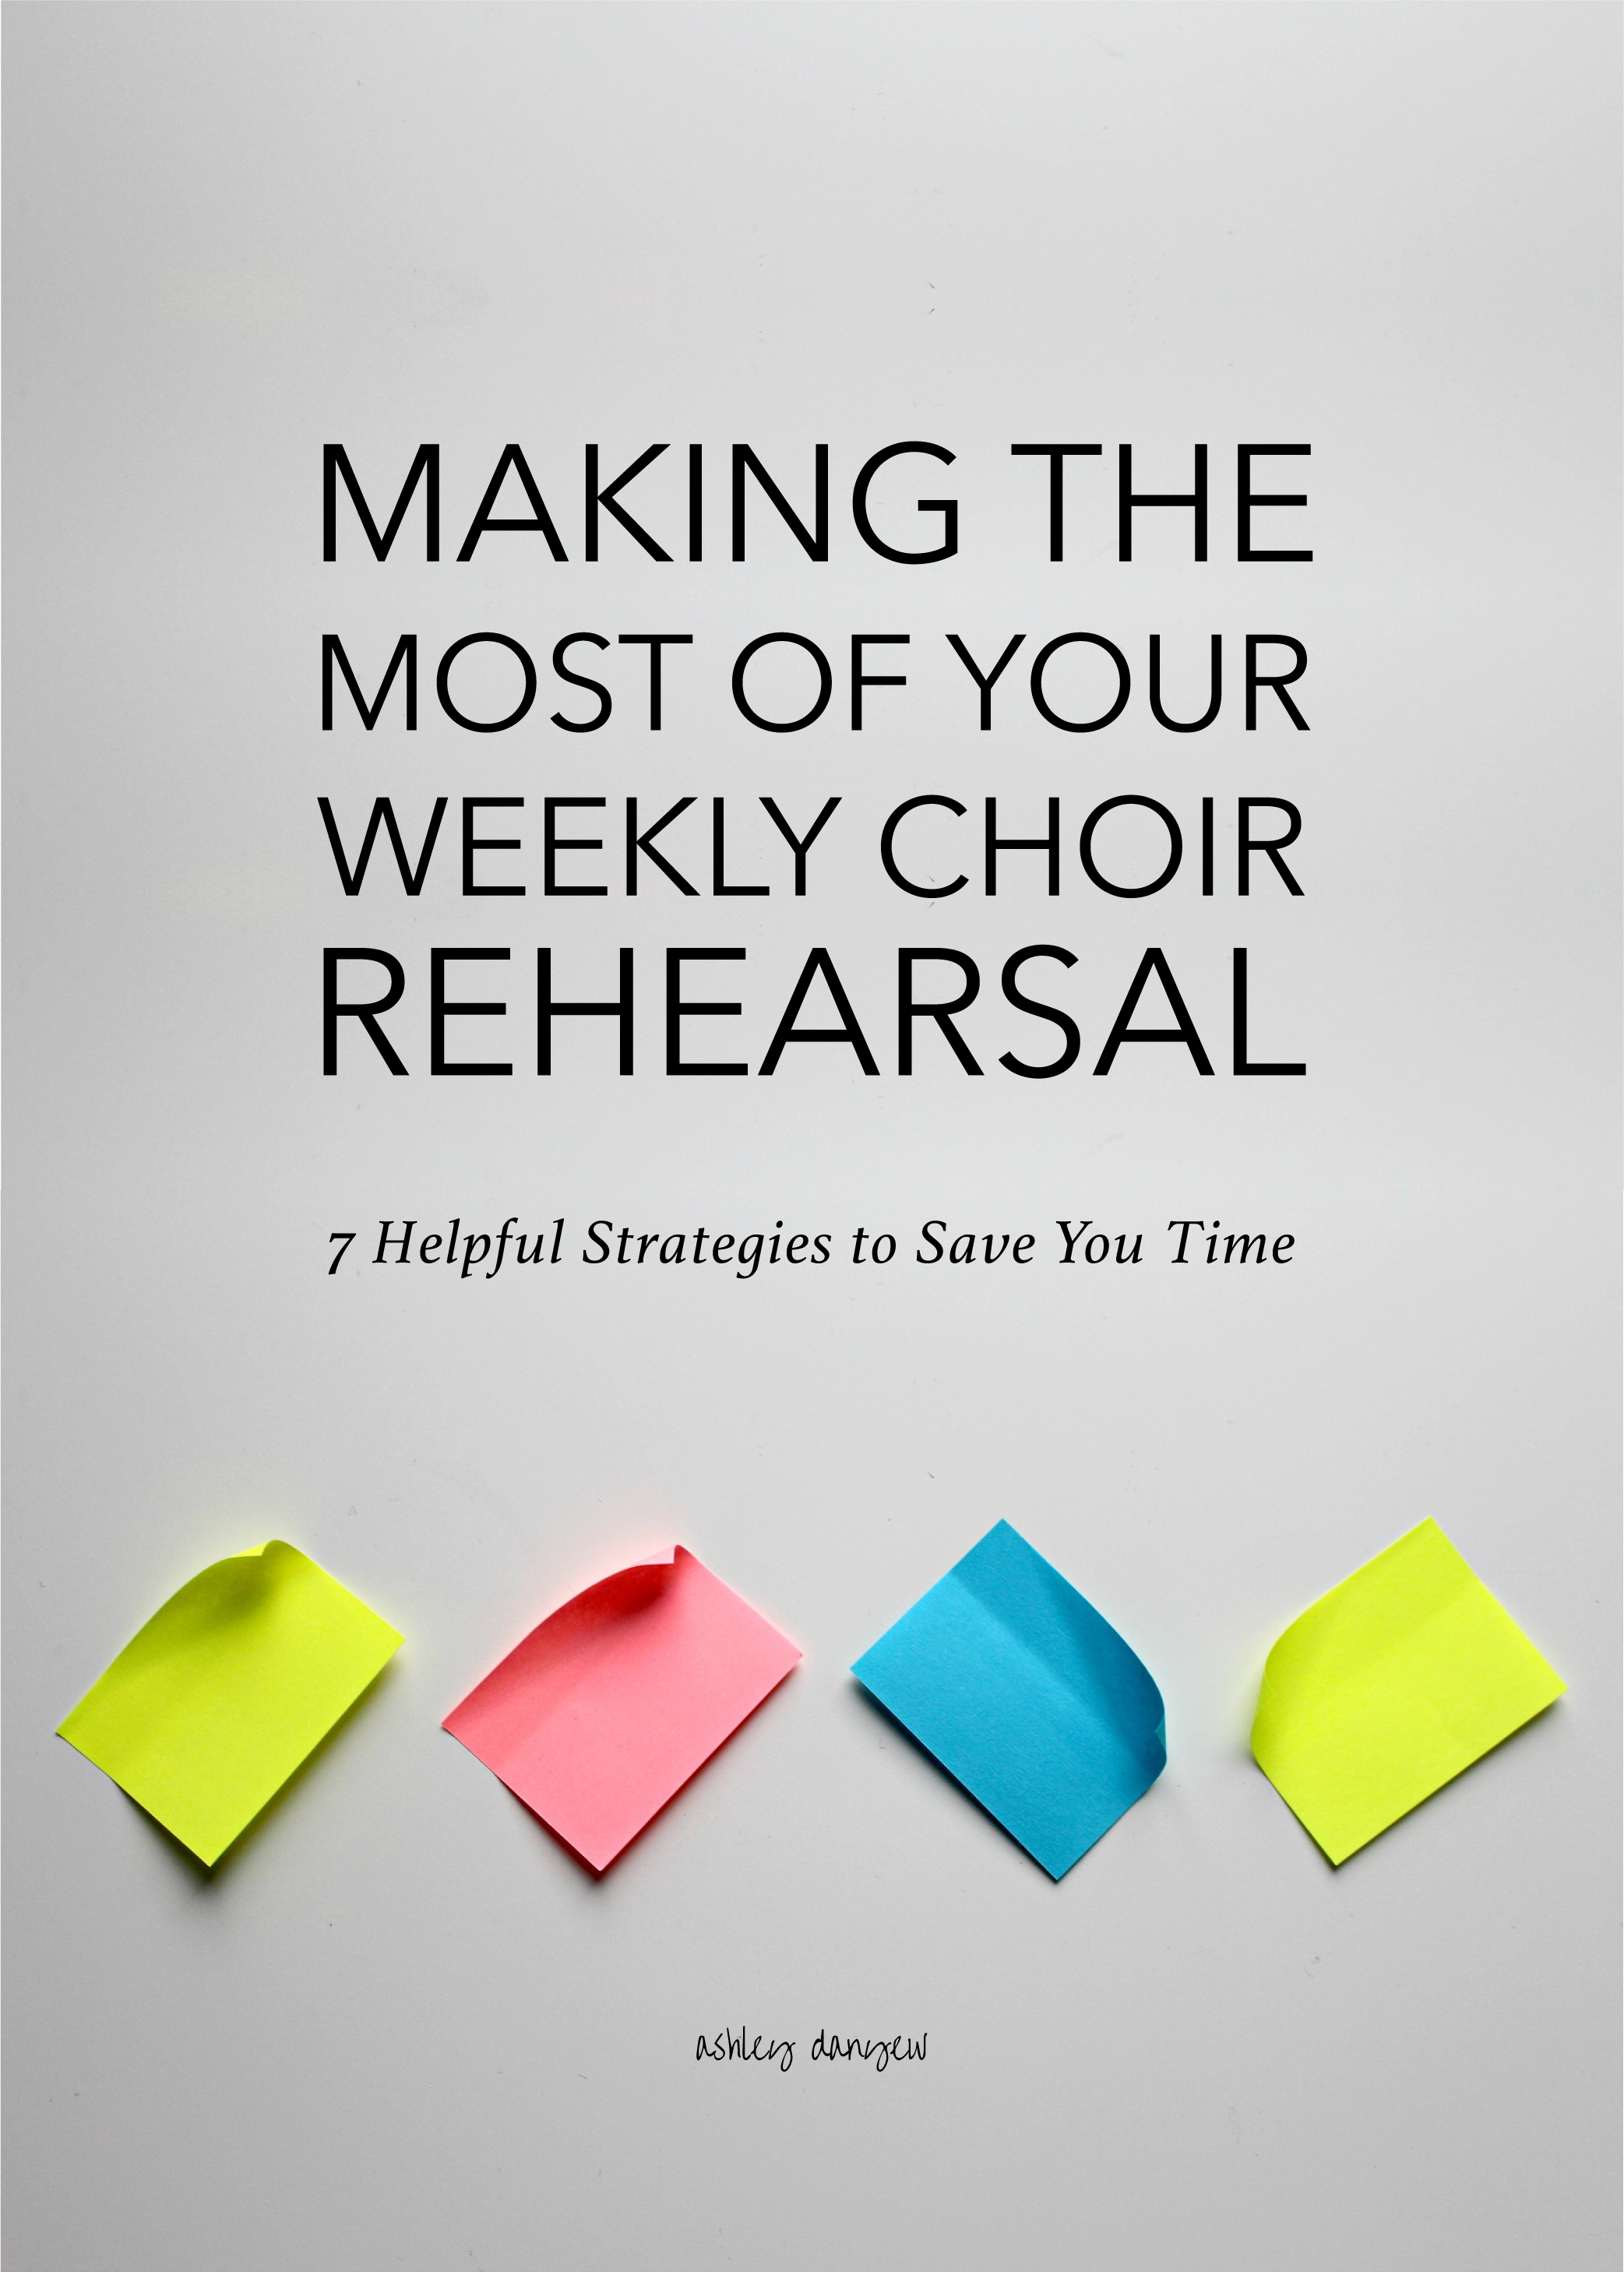 Making the Most of Your Weekly Rehearsal: 7 Helpful Strategies to Save You Time